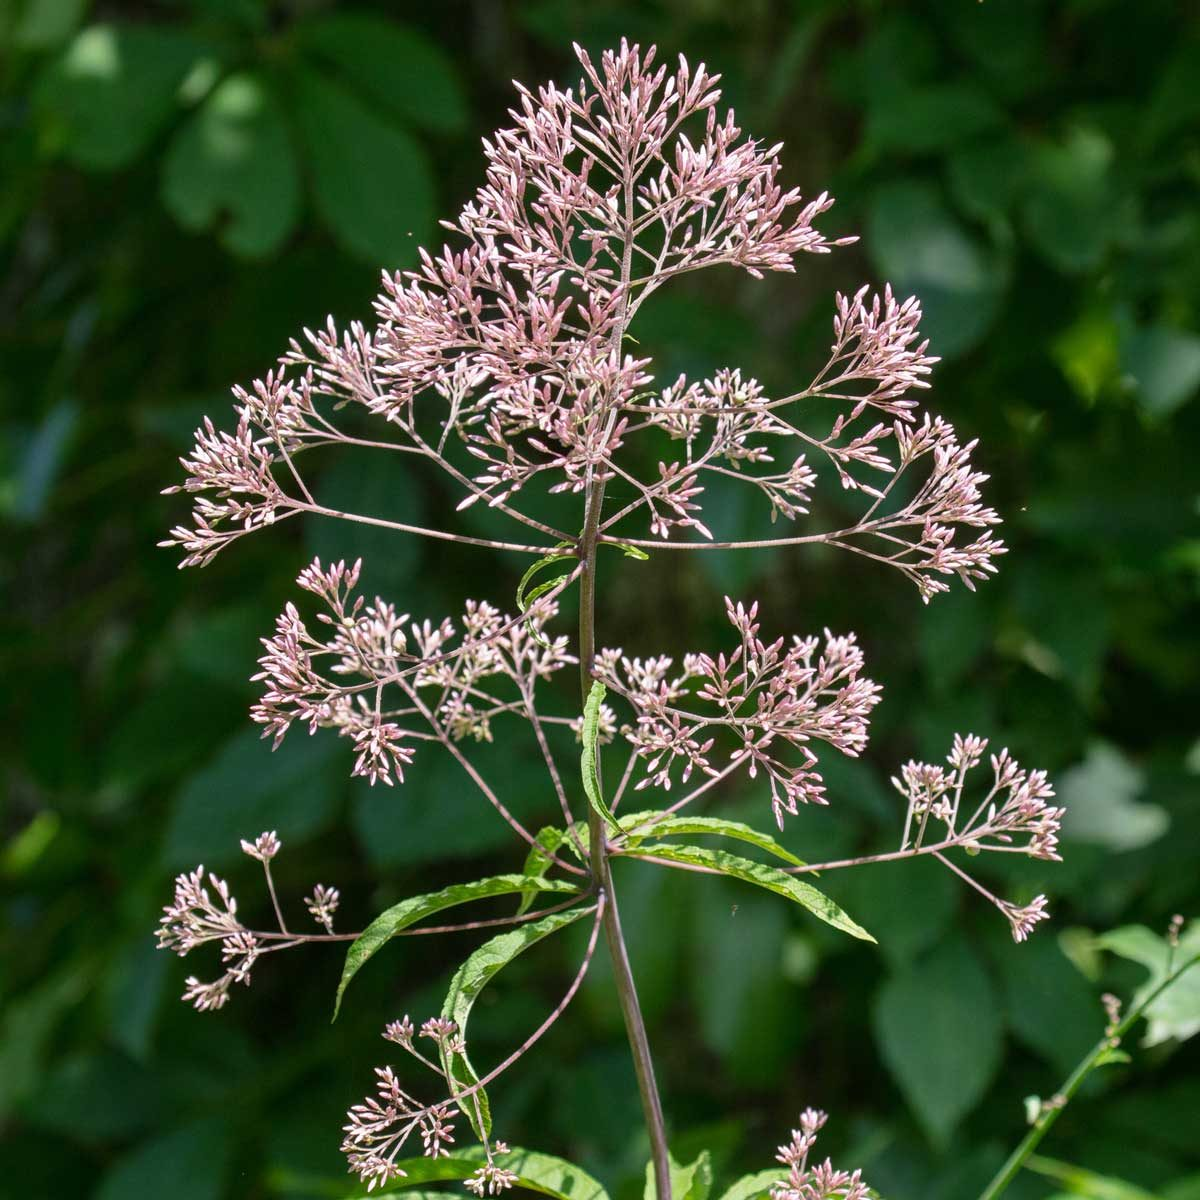 Tall Joe Pye Weed